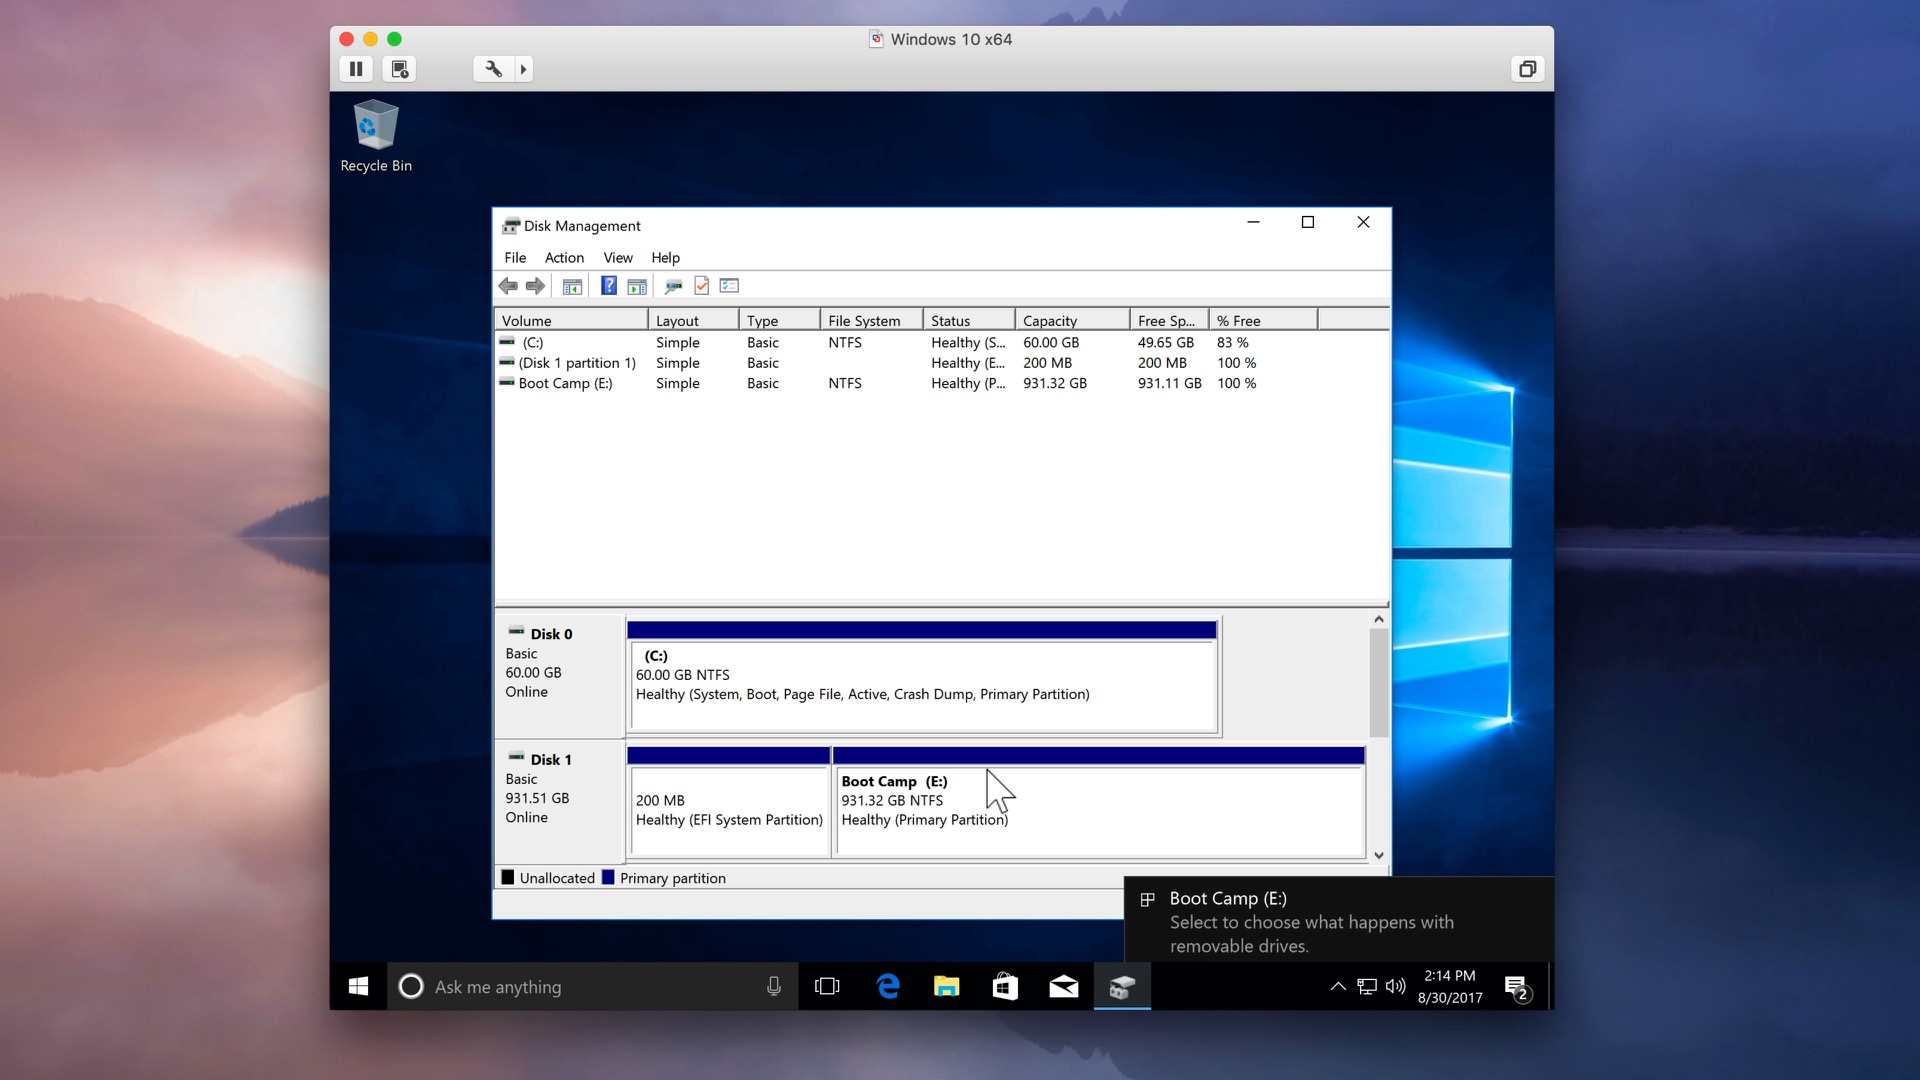 download boot camp 6 drivers for windows 10